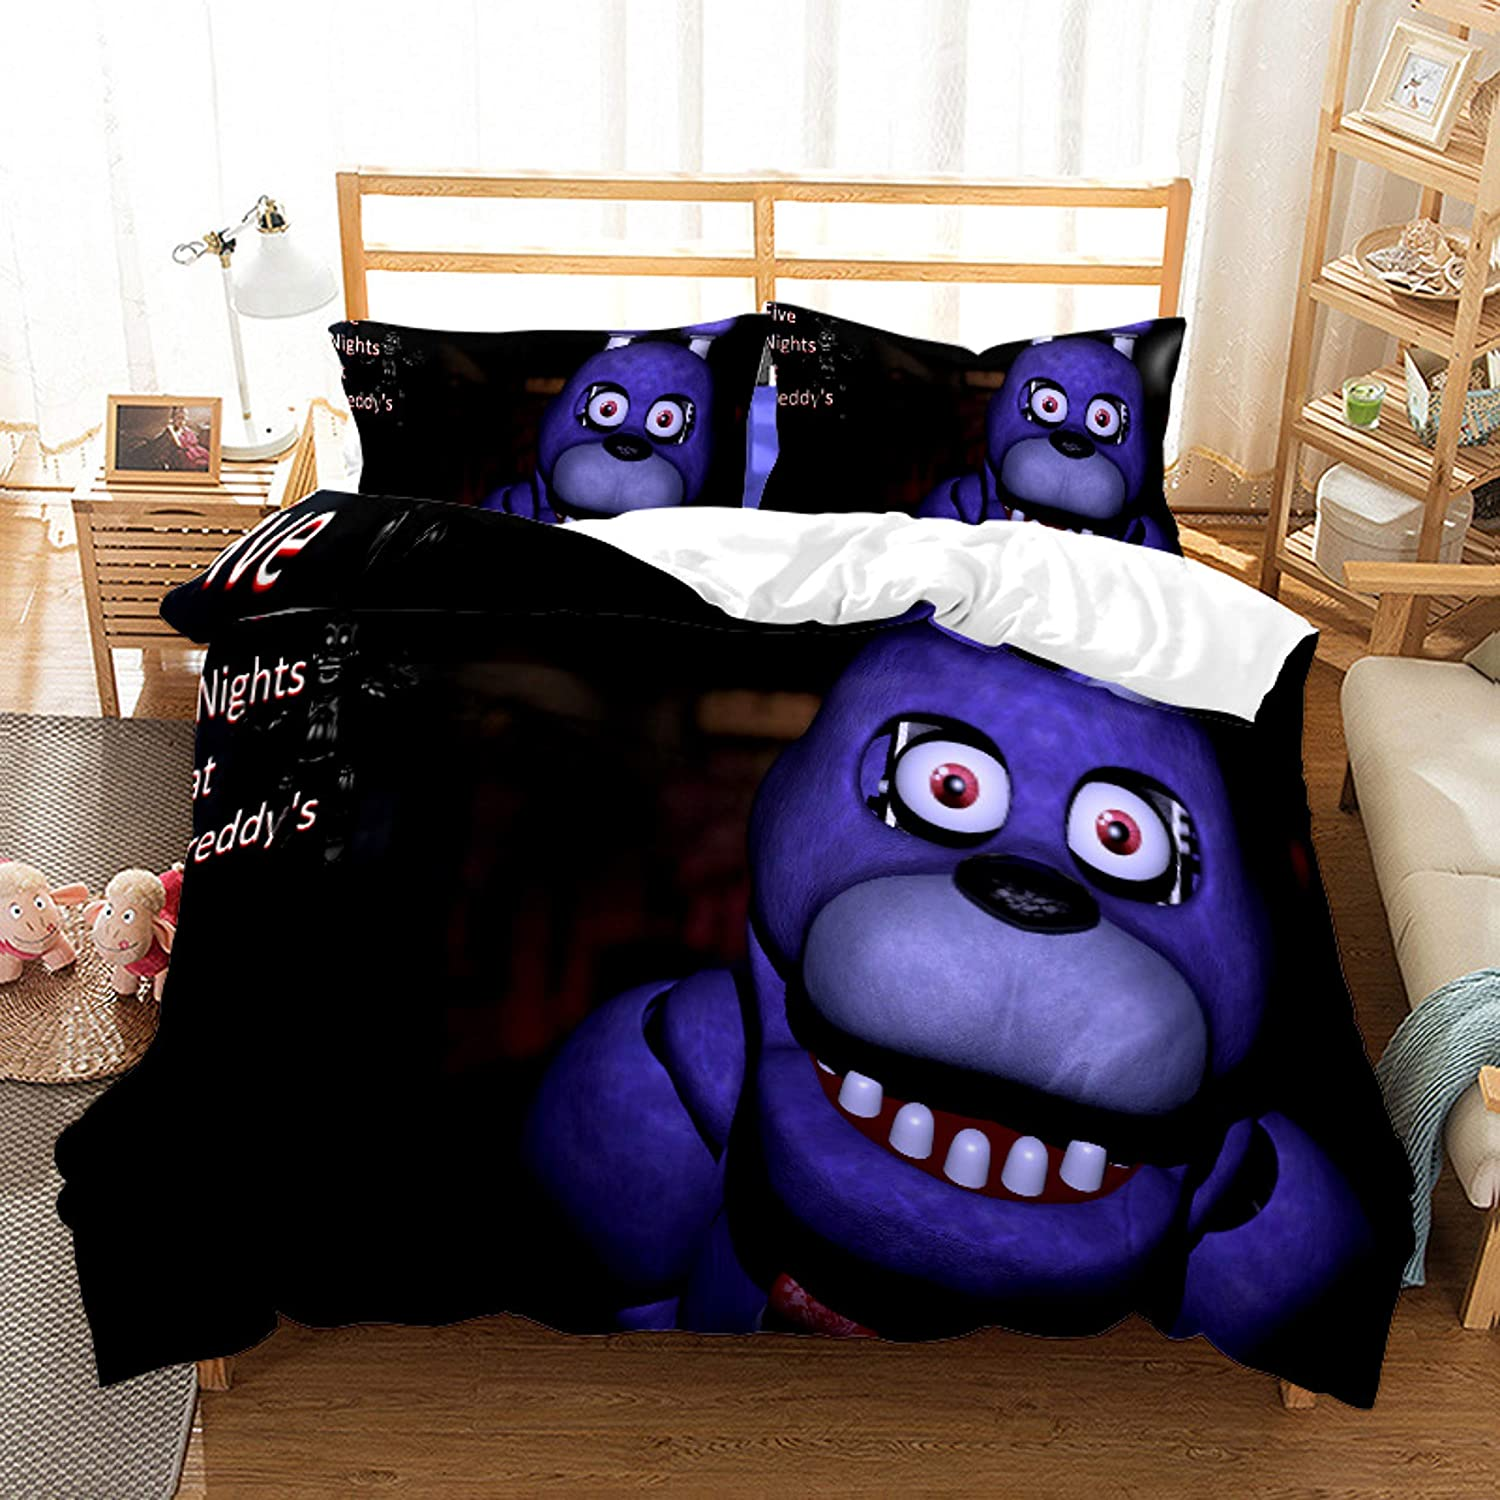 Ntioyg Five Nights at Freddy's Duvet Cover Sets for Kids Teens Adult Bed Set Bedding Without Comforter Sheet Queen